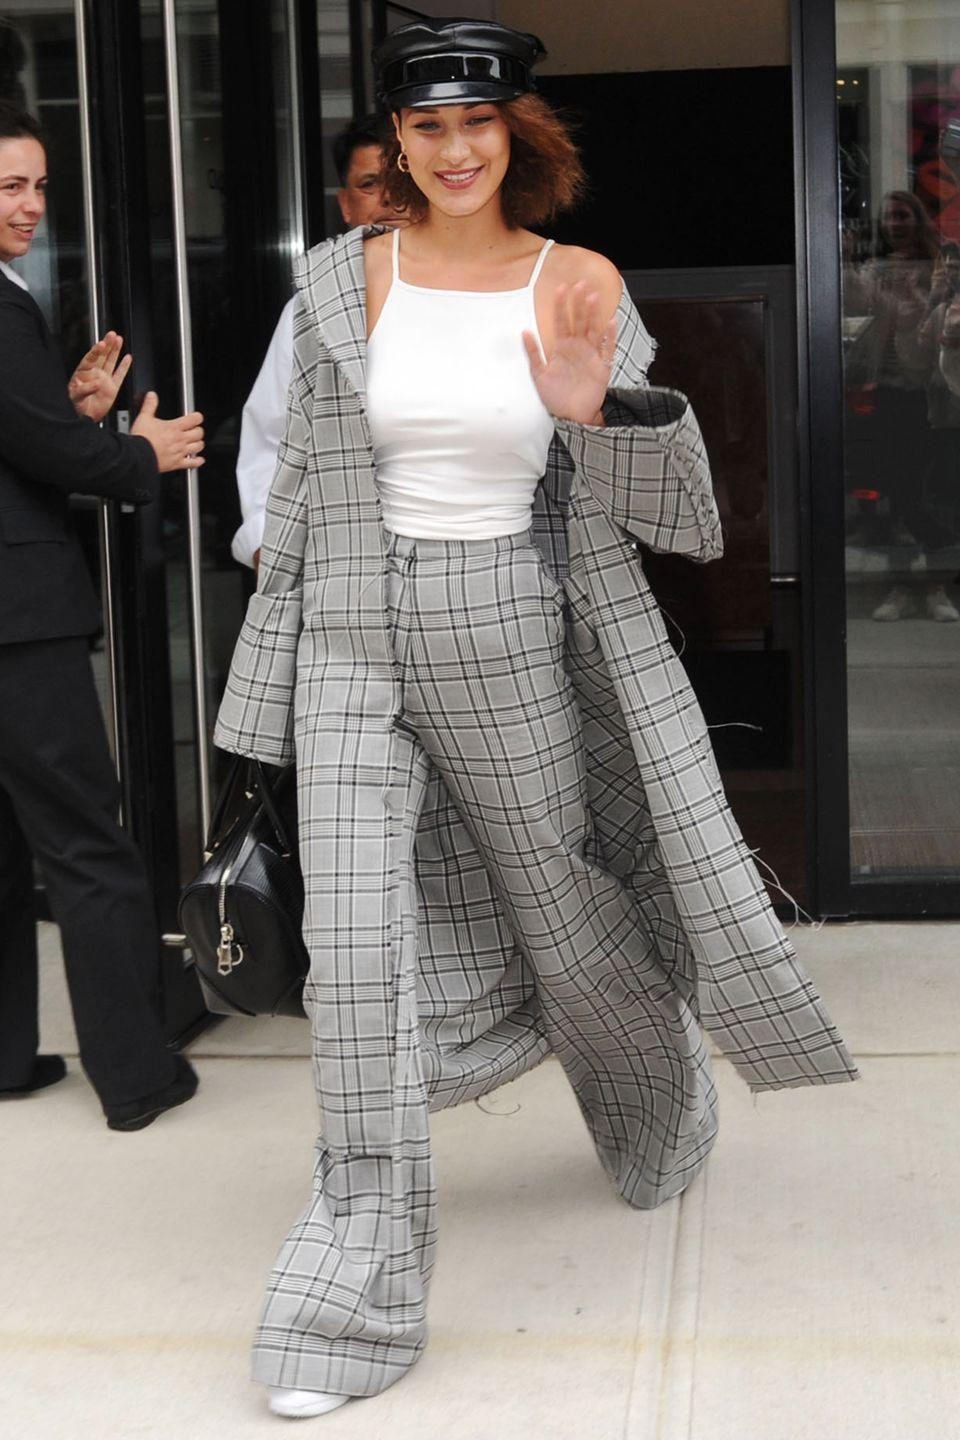 <p>In an oversized gray plaid trench and trousers from Zimmermannn, white tank top, white sneakers and conductor hat while out in NYC.</p>